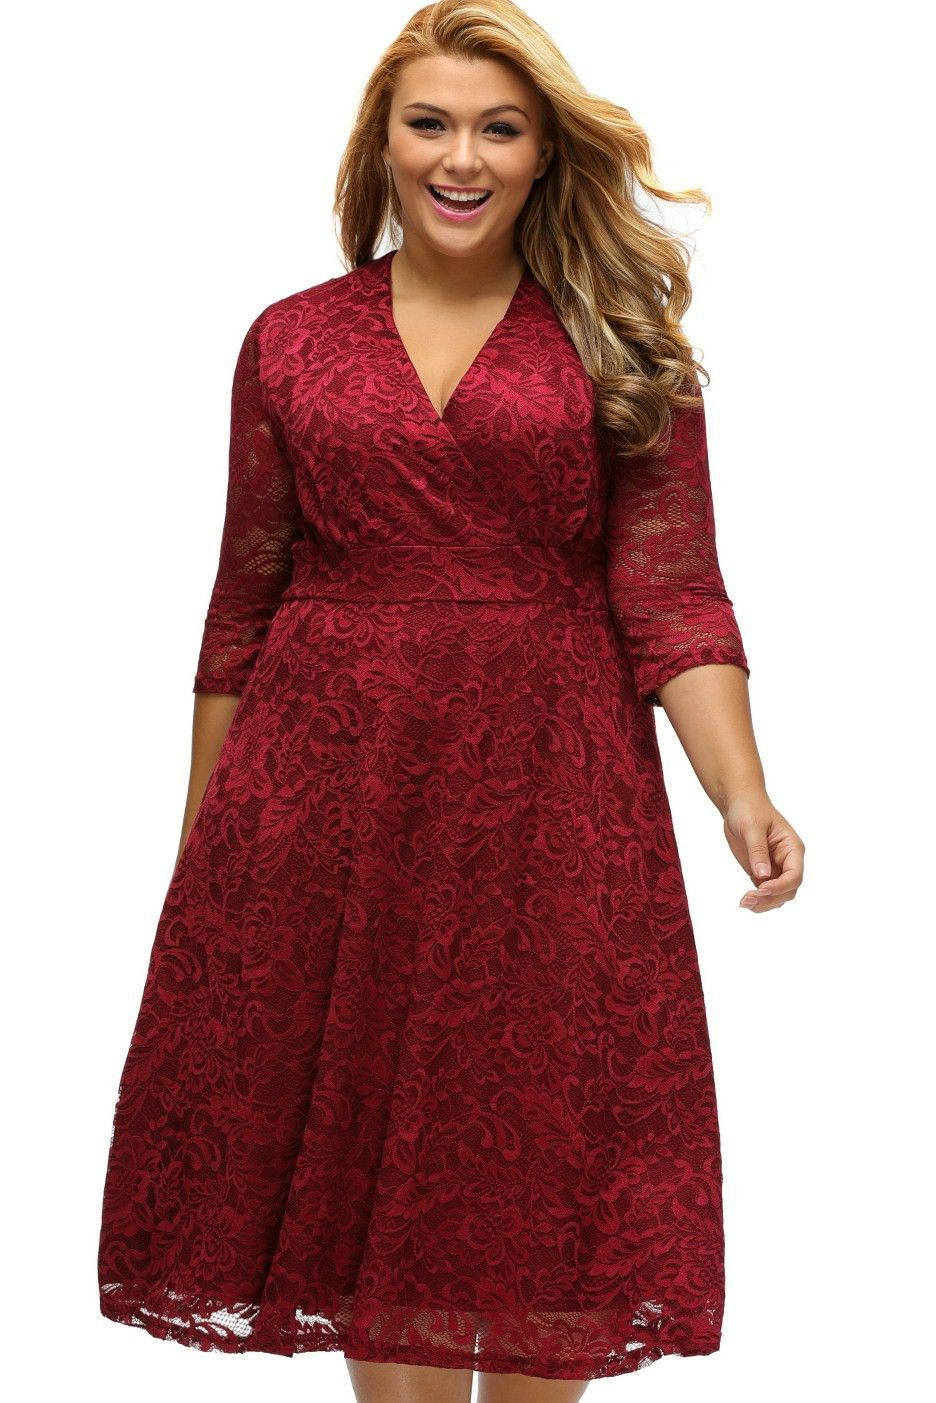 New Burgundy Surplice Lace Formal Plus Size Skater Dress For Sale Modeshe Com Free Shipping On 60 Casual Dresses Plus Size Skater Dress Lace Formal Dress